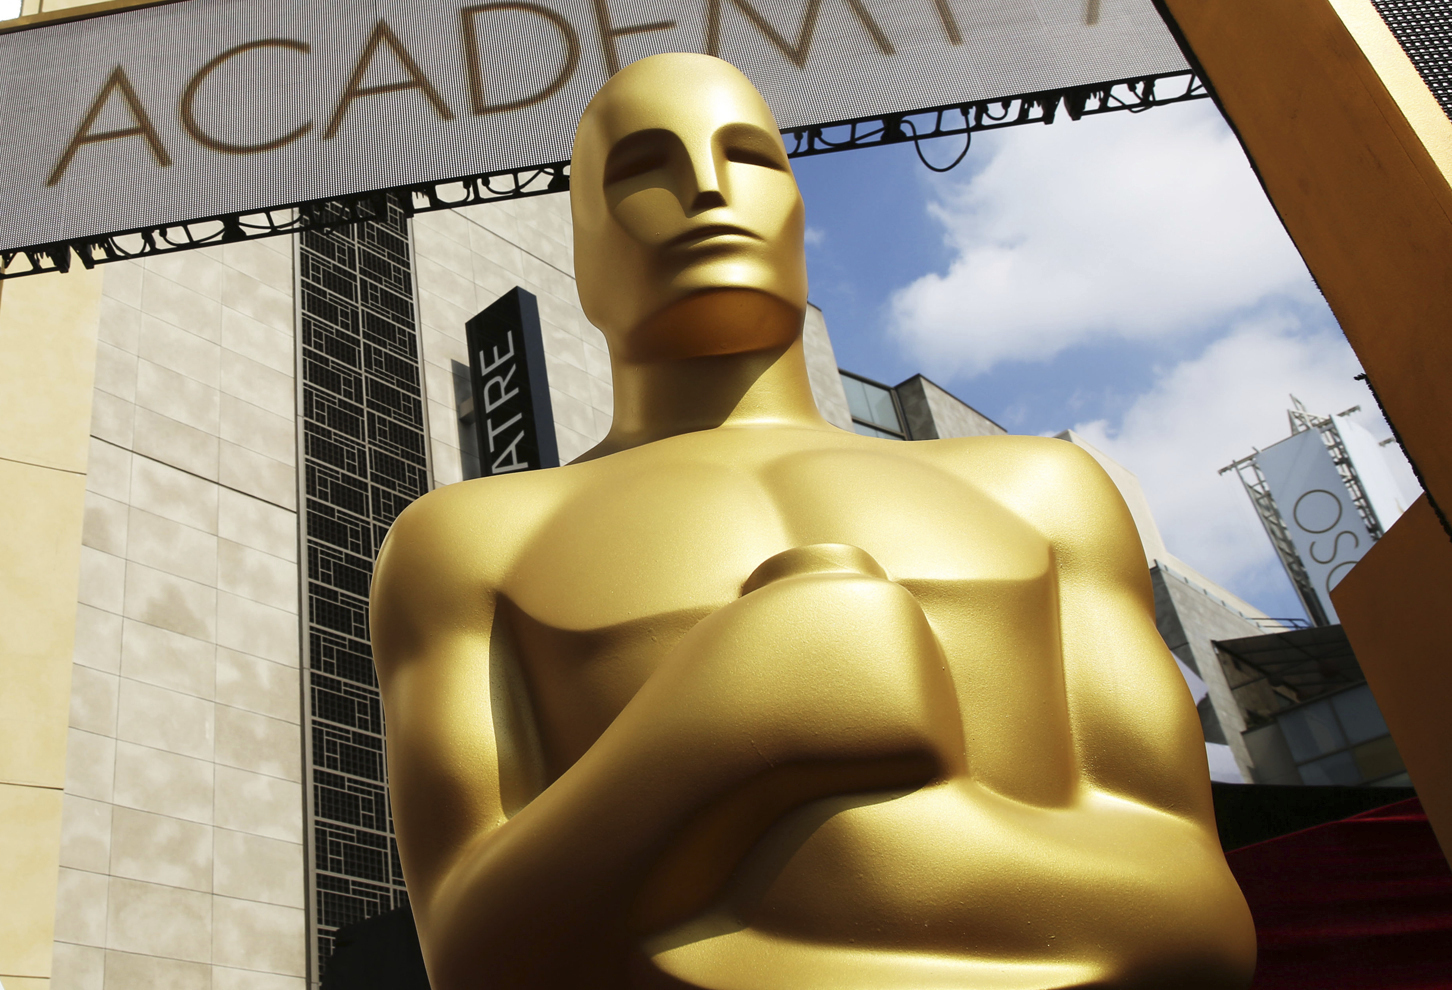 An Oscar statue appears outside the Dolby Theatre for the 87th Academy Awards in Los Angeles on Feb. 21, 2015 .